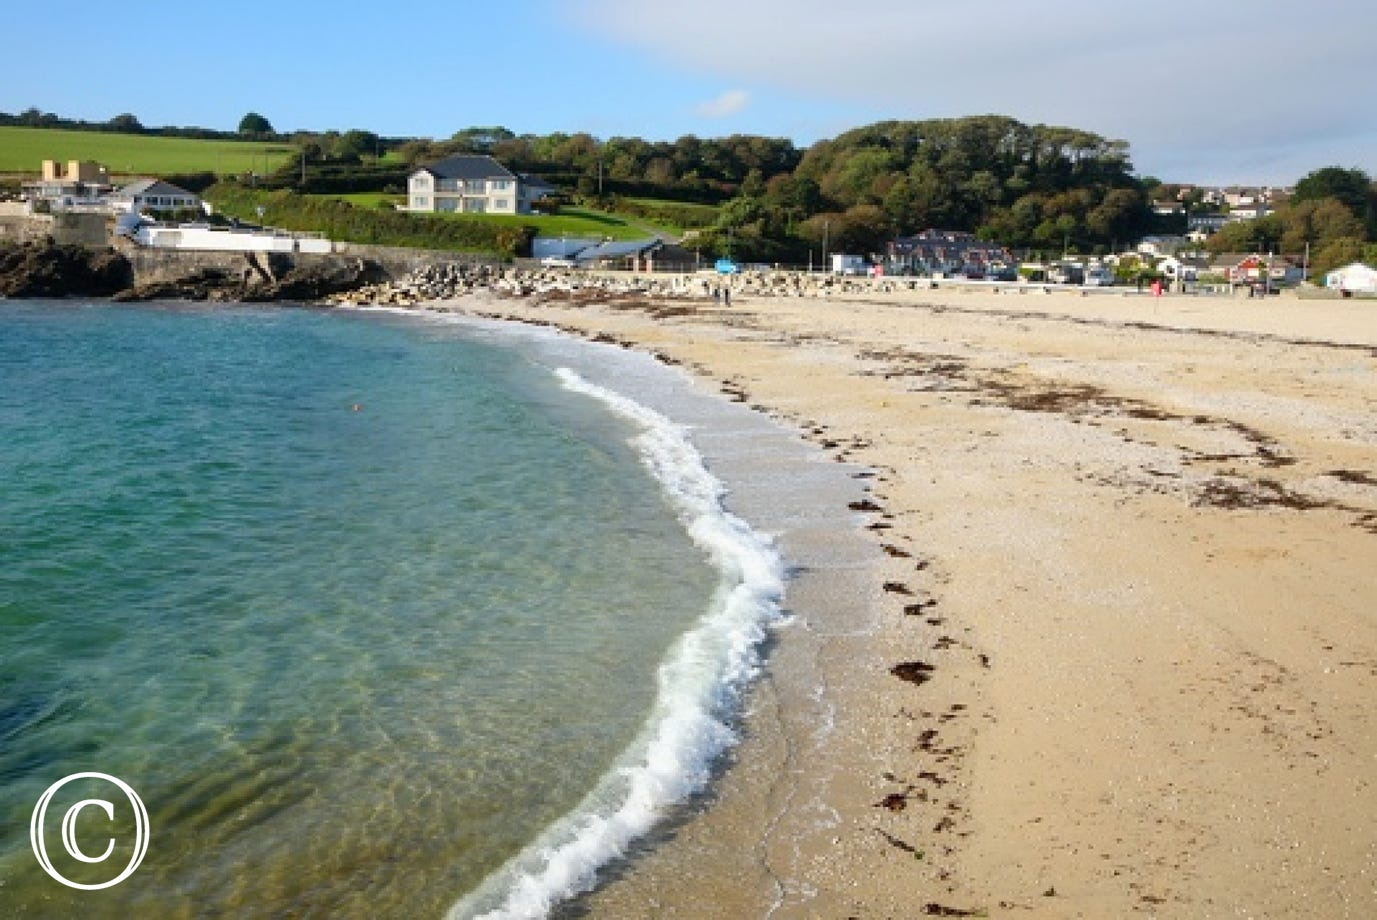 Swanpool Beach Falmouth just a short drive away